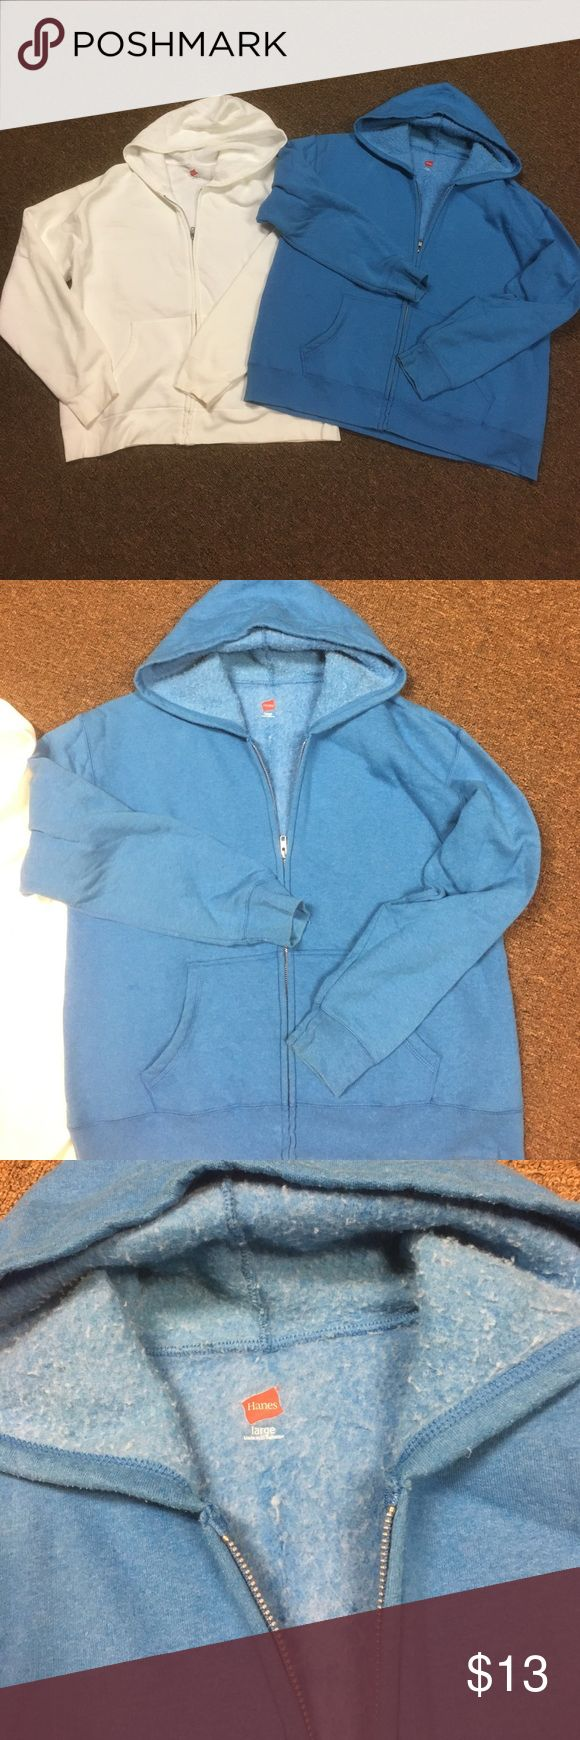 Women's Hanes Zip Up hoodies One white one blue.. white in used condition a little discolor by bottom of sleeves from sitting in my closet,blue in good condition selling as a bundle Hanes Sweaters